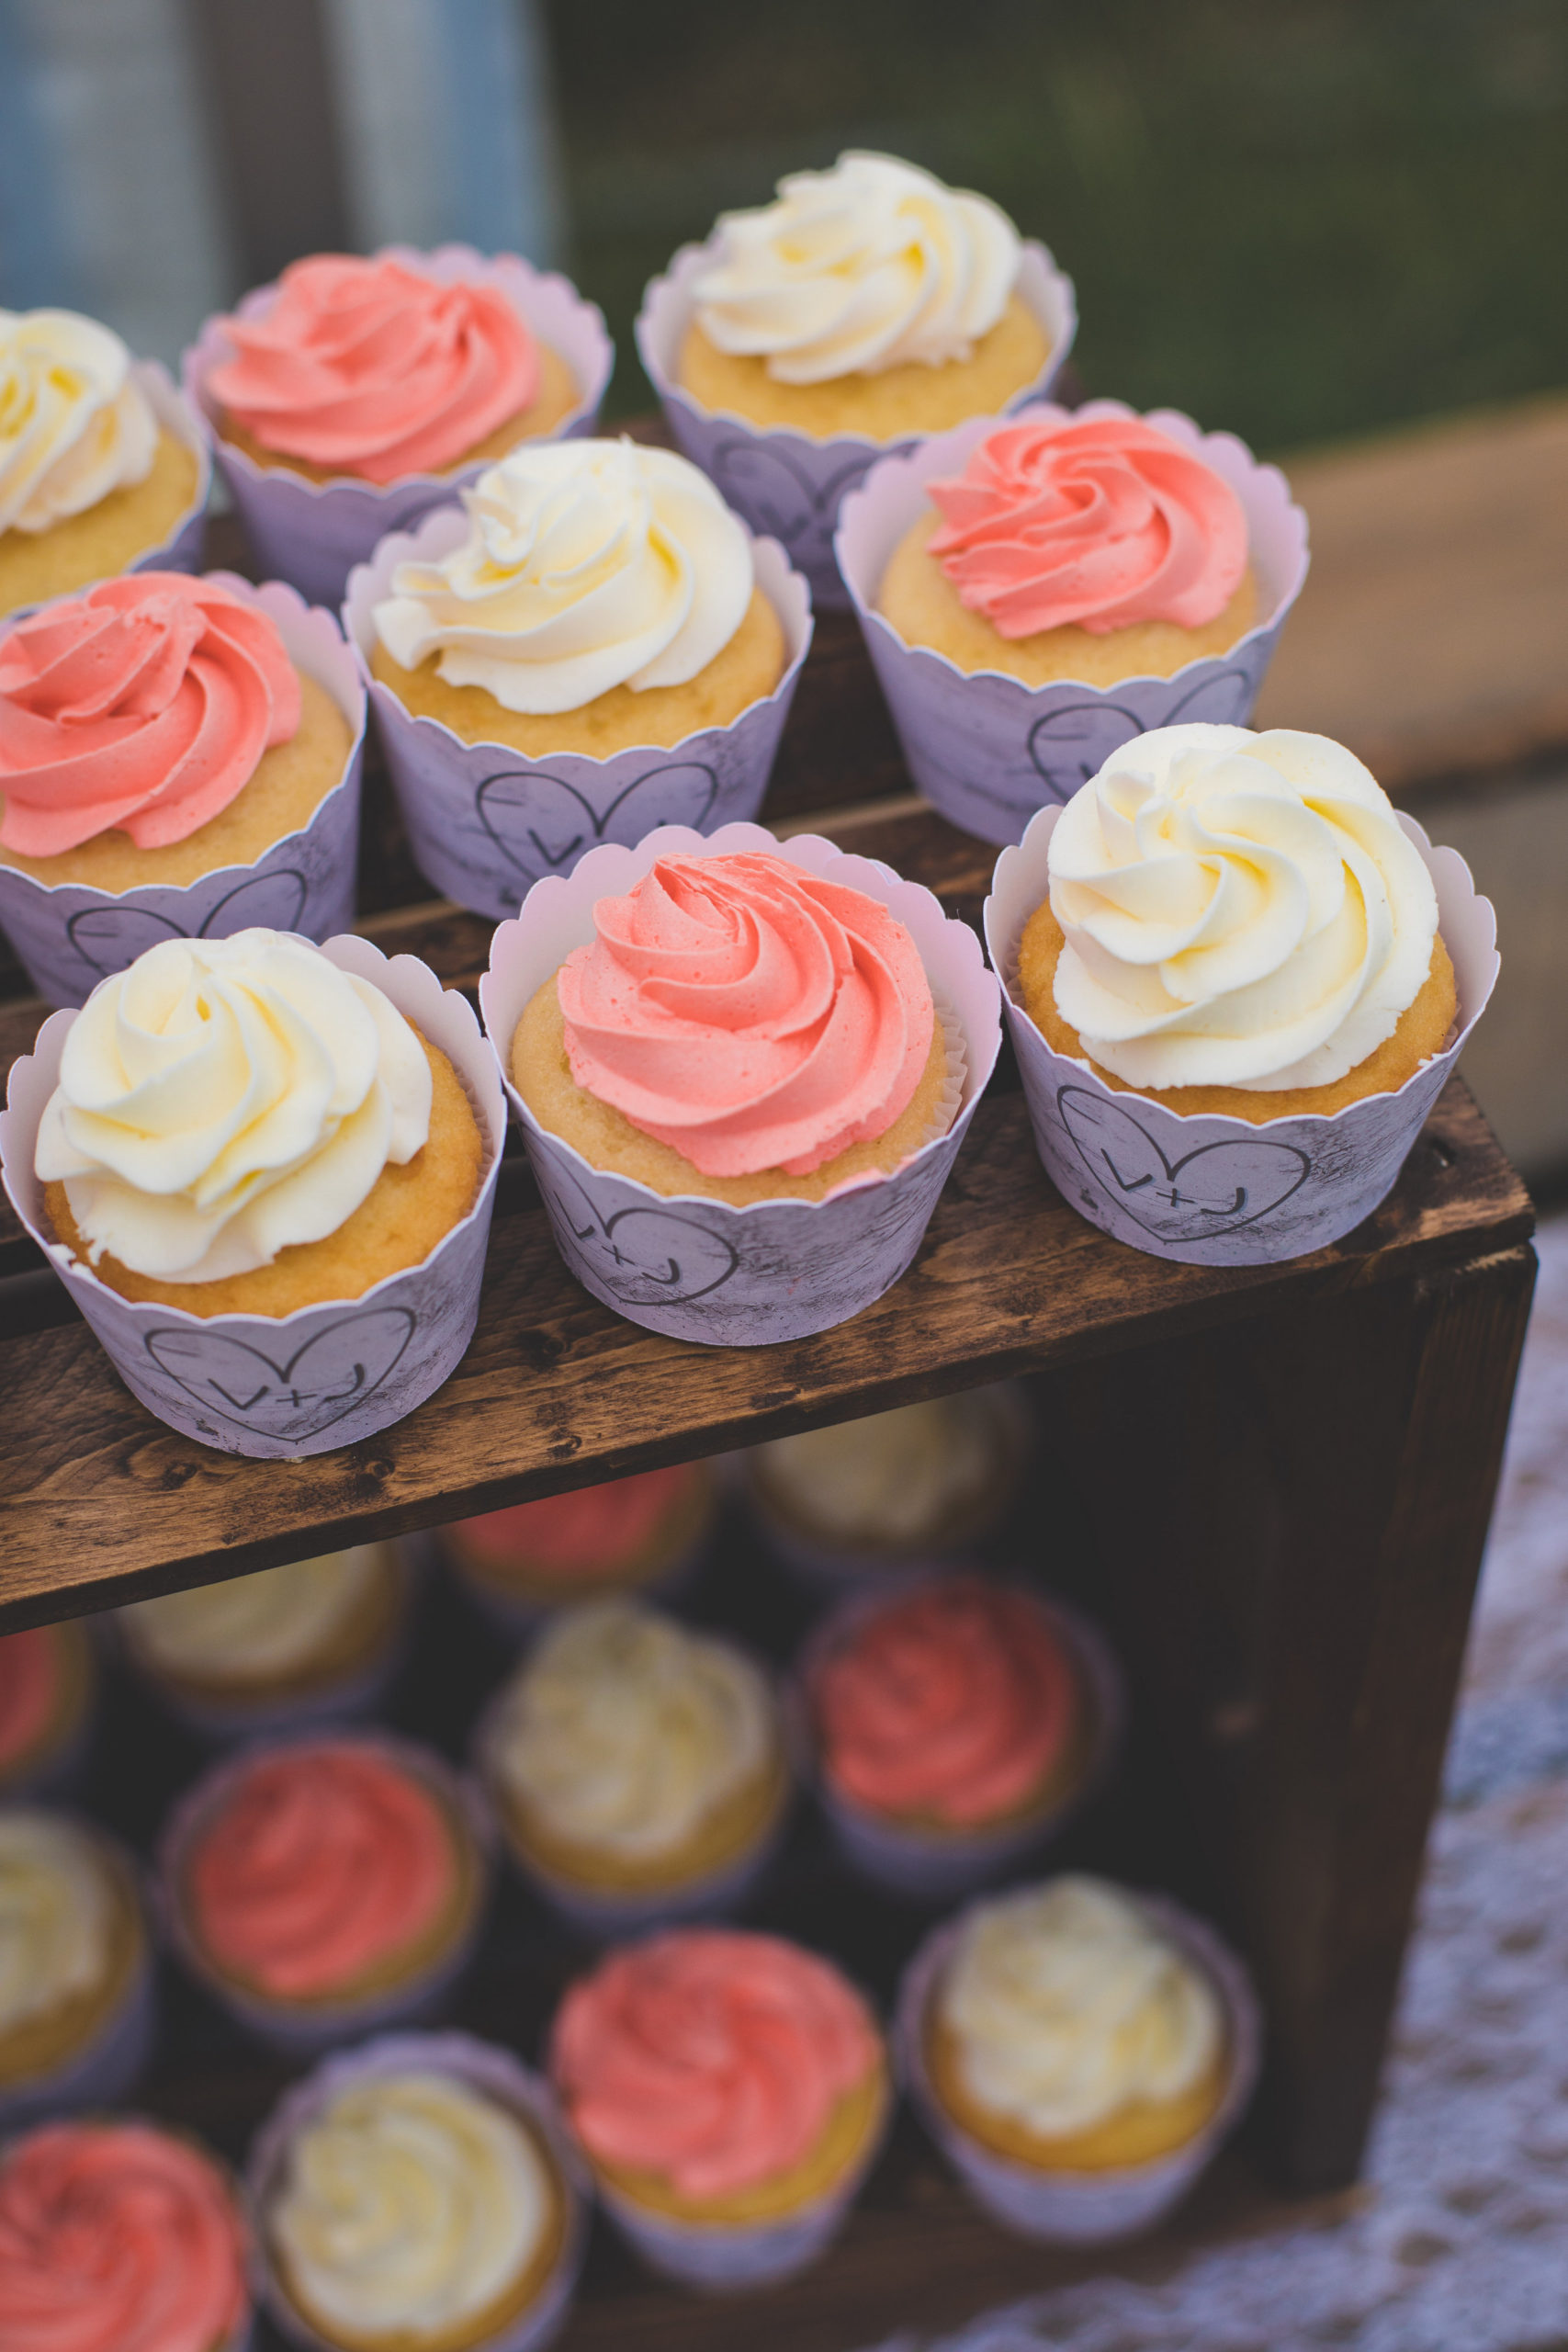 cupcakes decorated with white icing and coral icing - cupcakes are stacked on a wood crate.